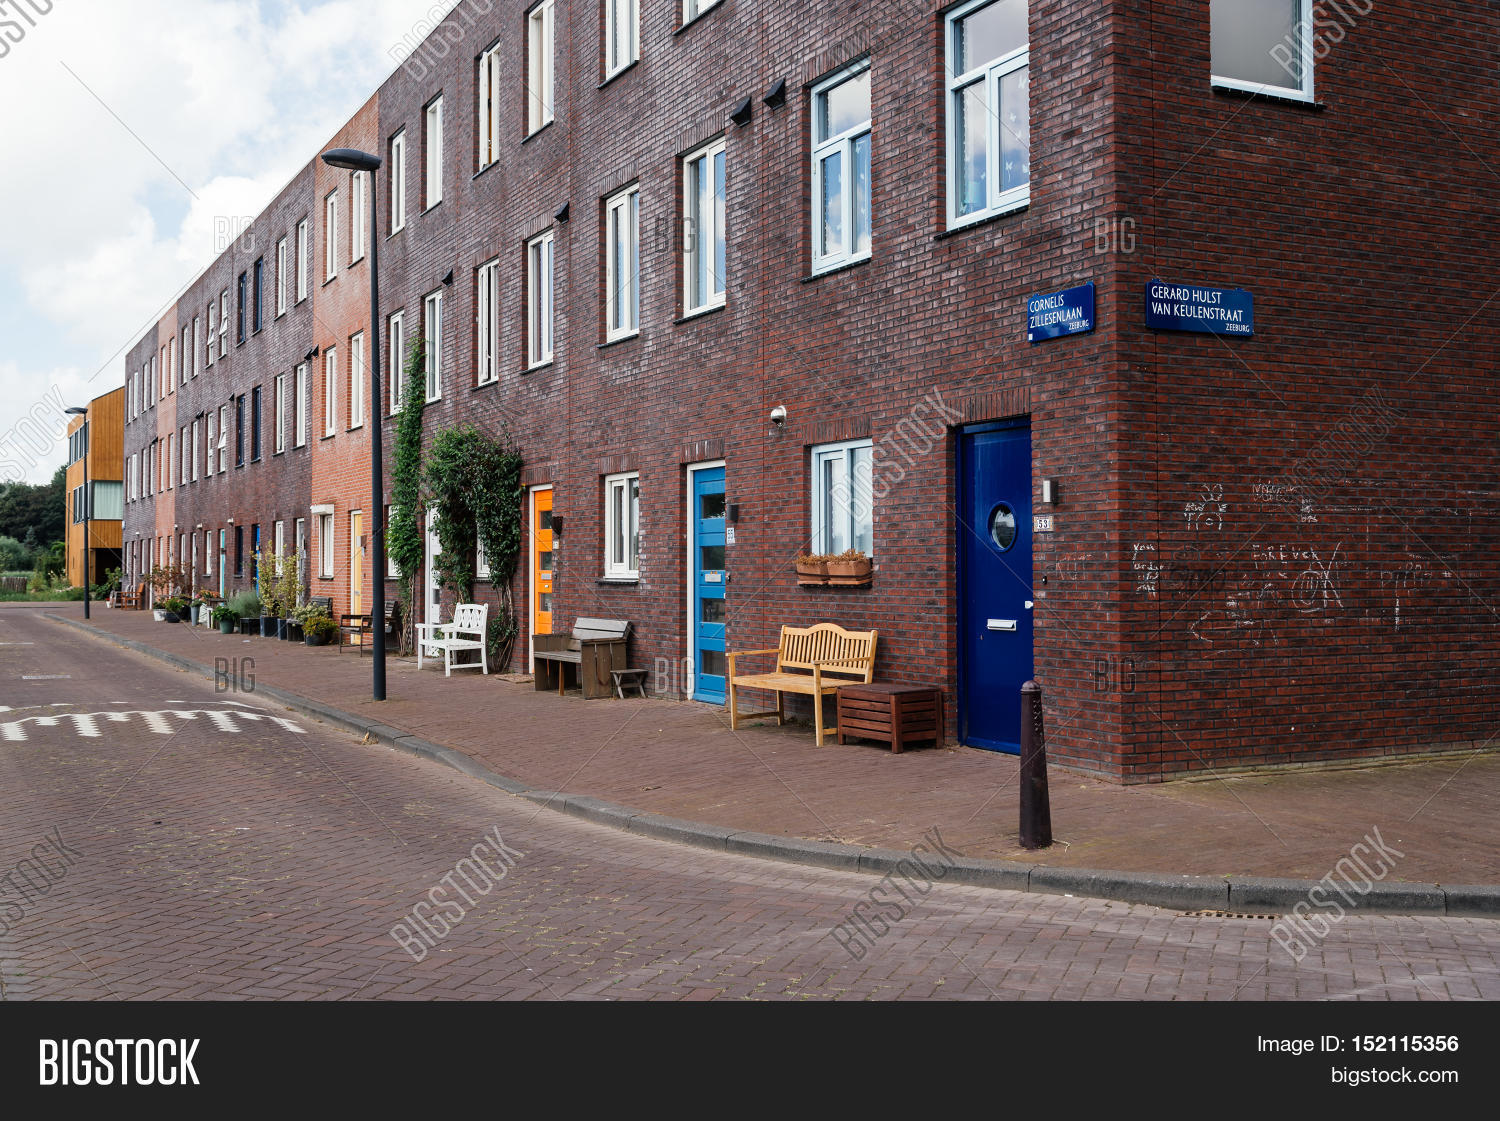 ad0a3a9a06 Amsterdam Netherlands - August 08 2016  Row modern architecture houses.  Ijburg is a residential